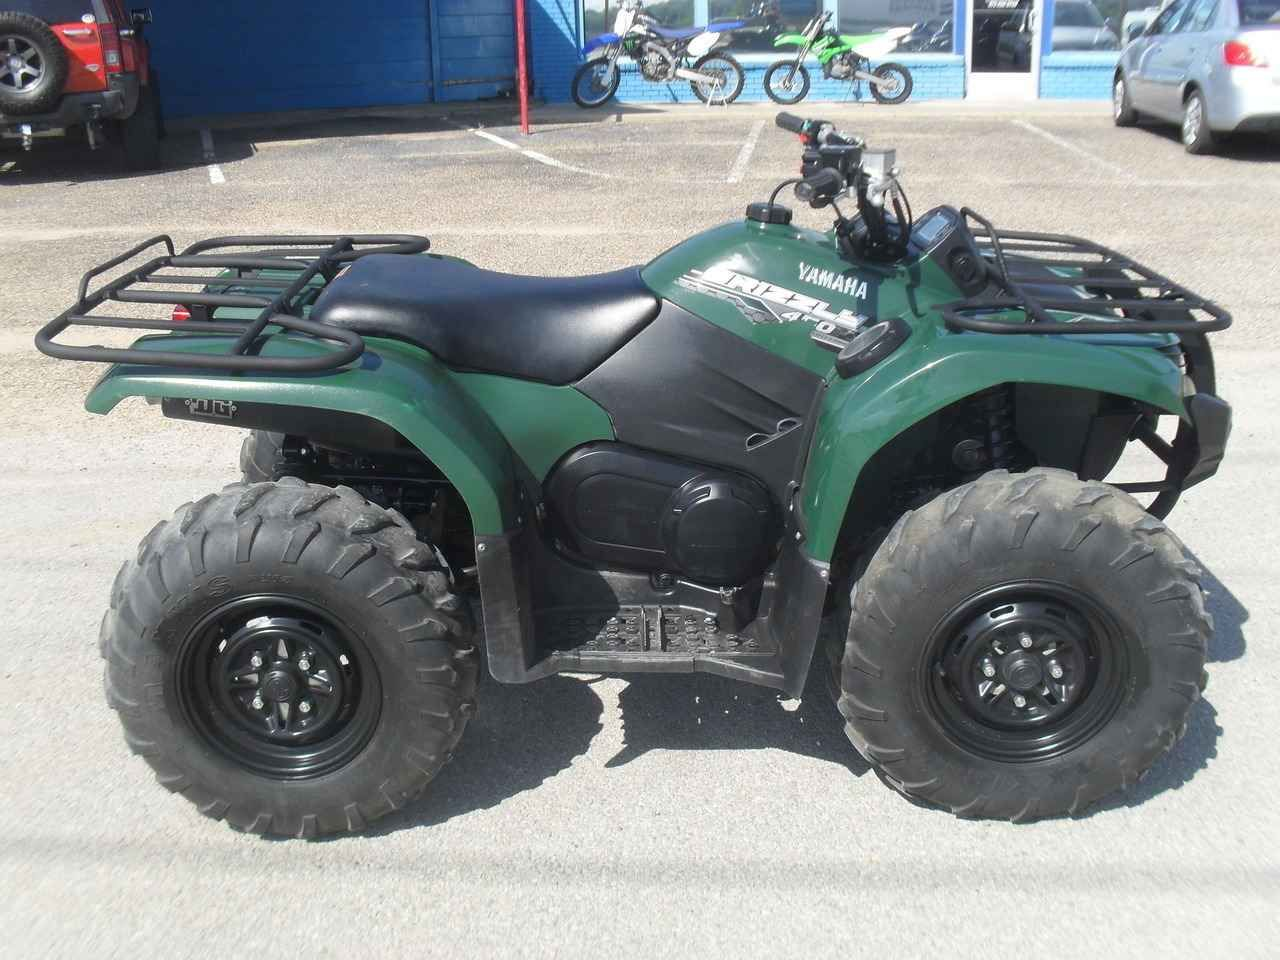 Used Honda Four Wheelers For Sale >> Used 2014 Yamaha GRIZZLY 450 AUTO 4X4 EPS ATVs For Sale in ...